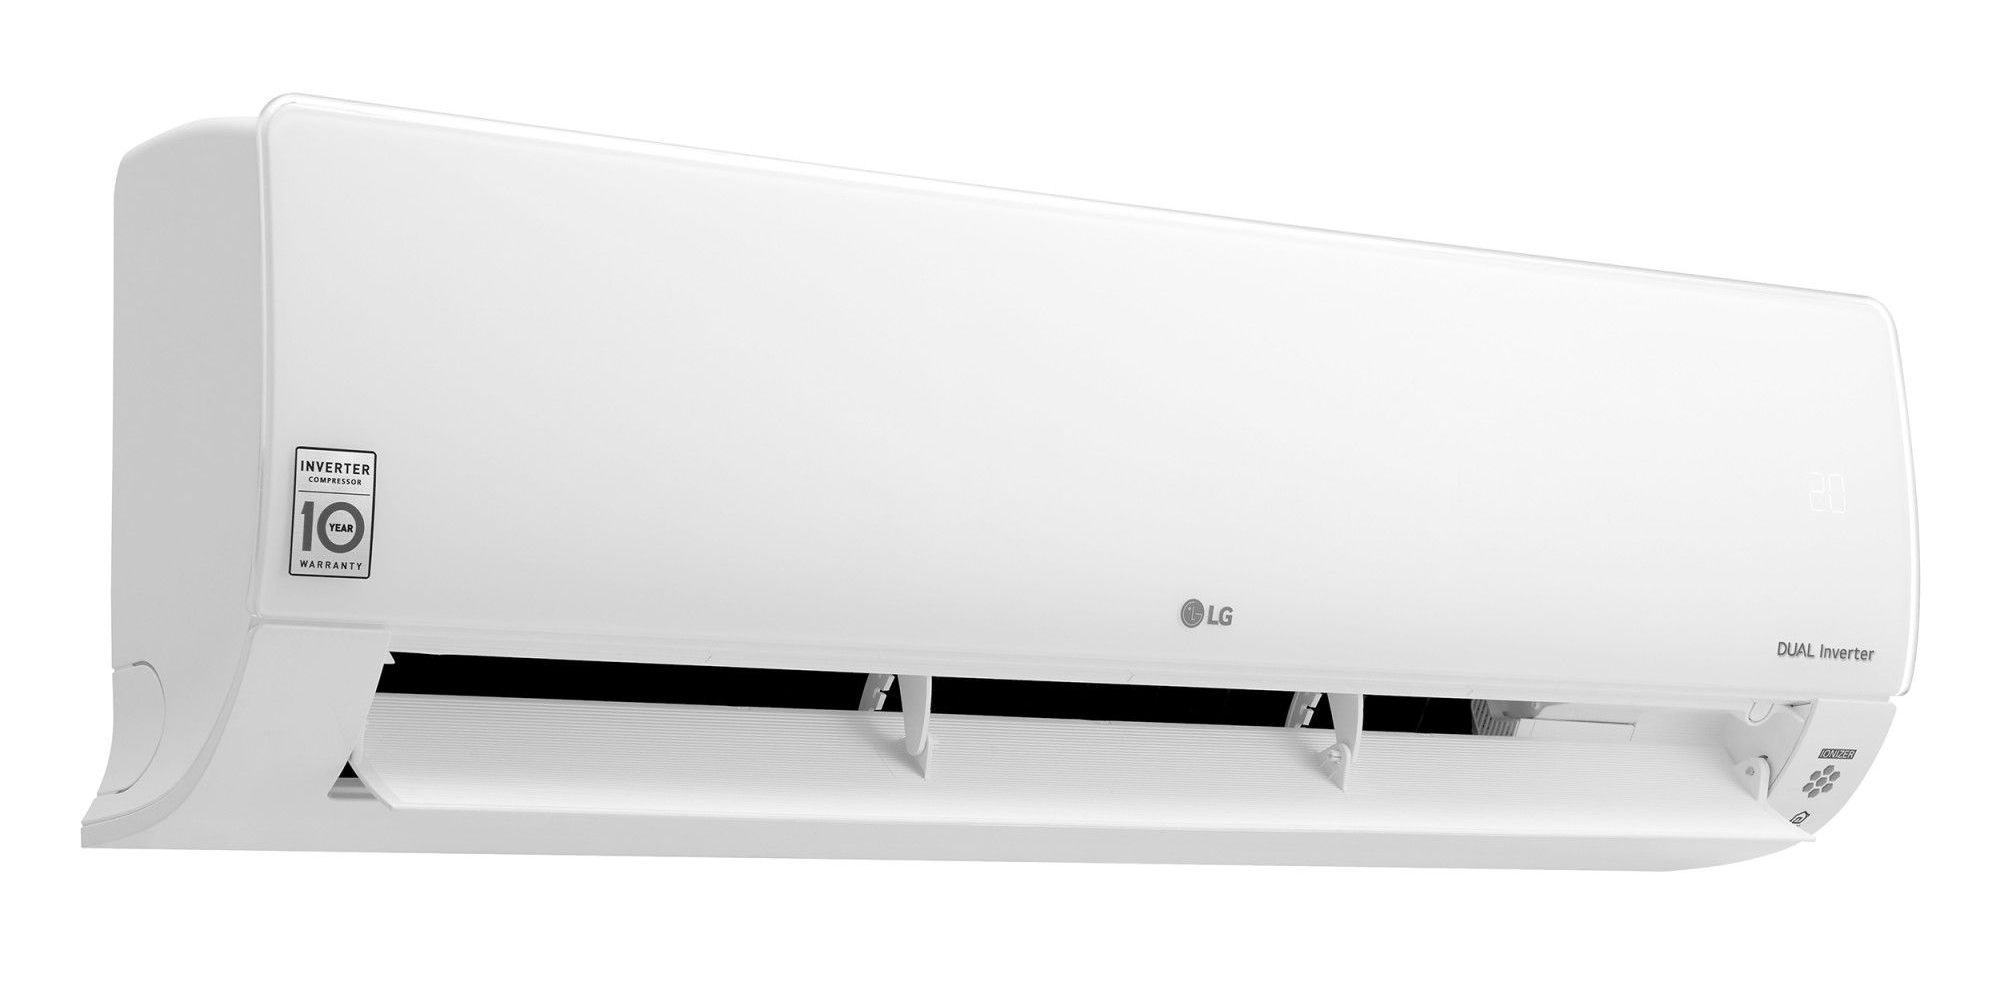 LG Deluxe Dual Inverter DC18RQ